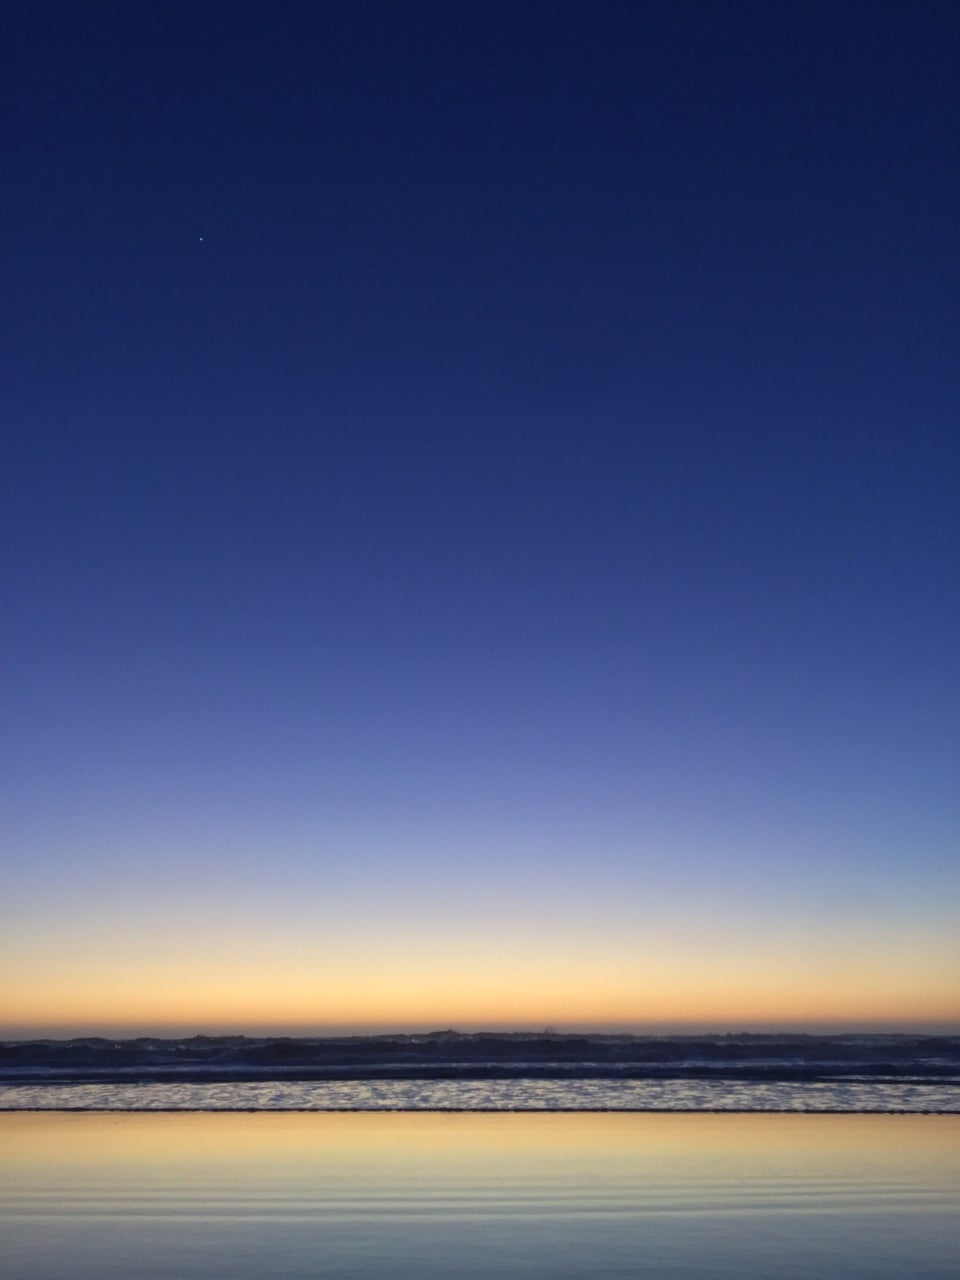 Deep blue post-sunset sky, gradient to lighter blue then yellow to an orange horizon above the ocean, crashing waves on the shore, reflecting the orange yellow blue sky above, subtle horizontal lines in the shore.